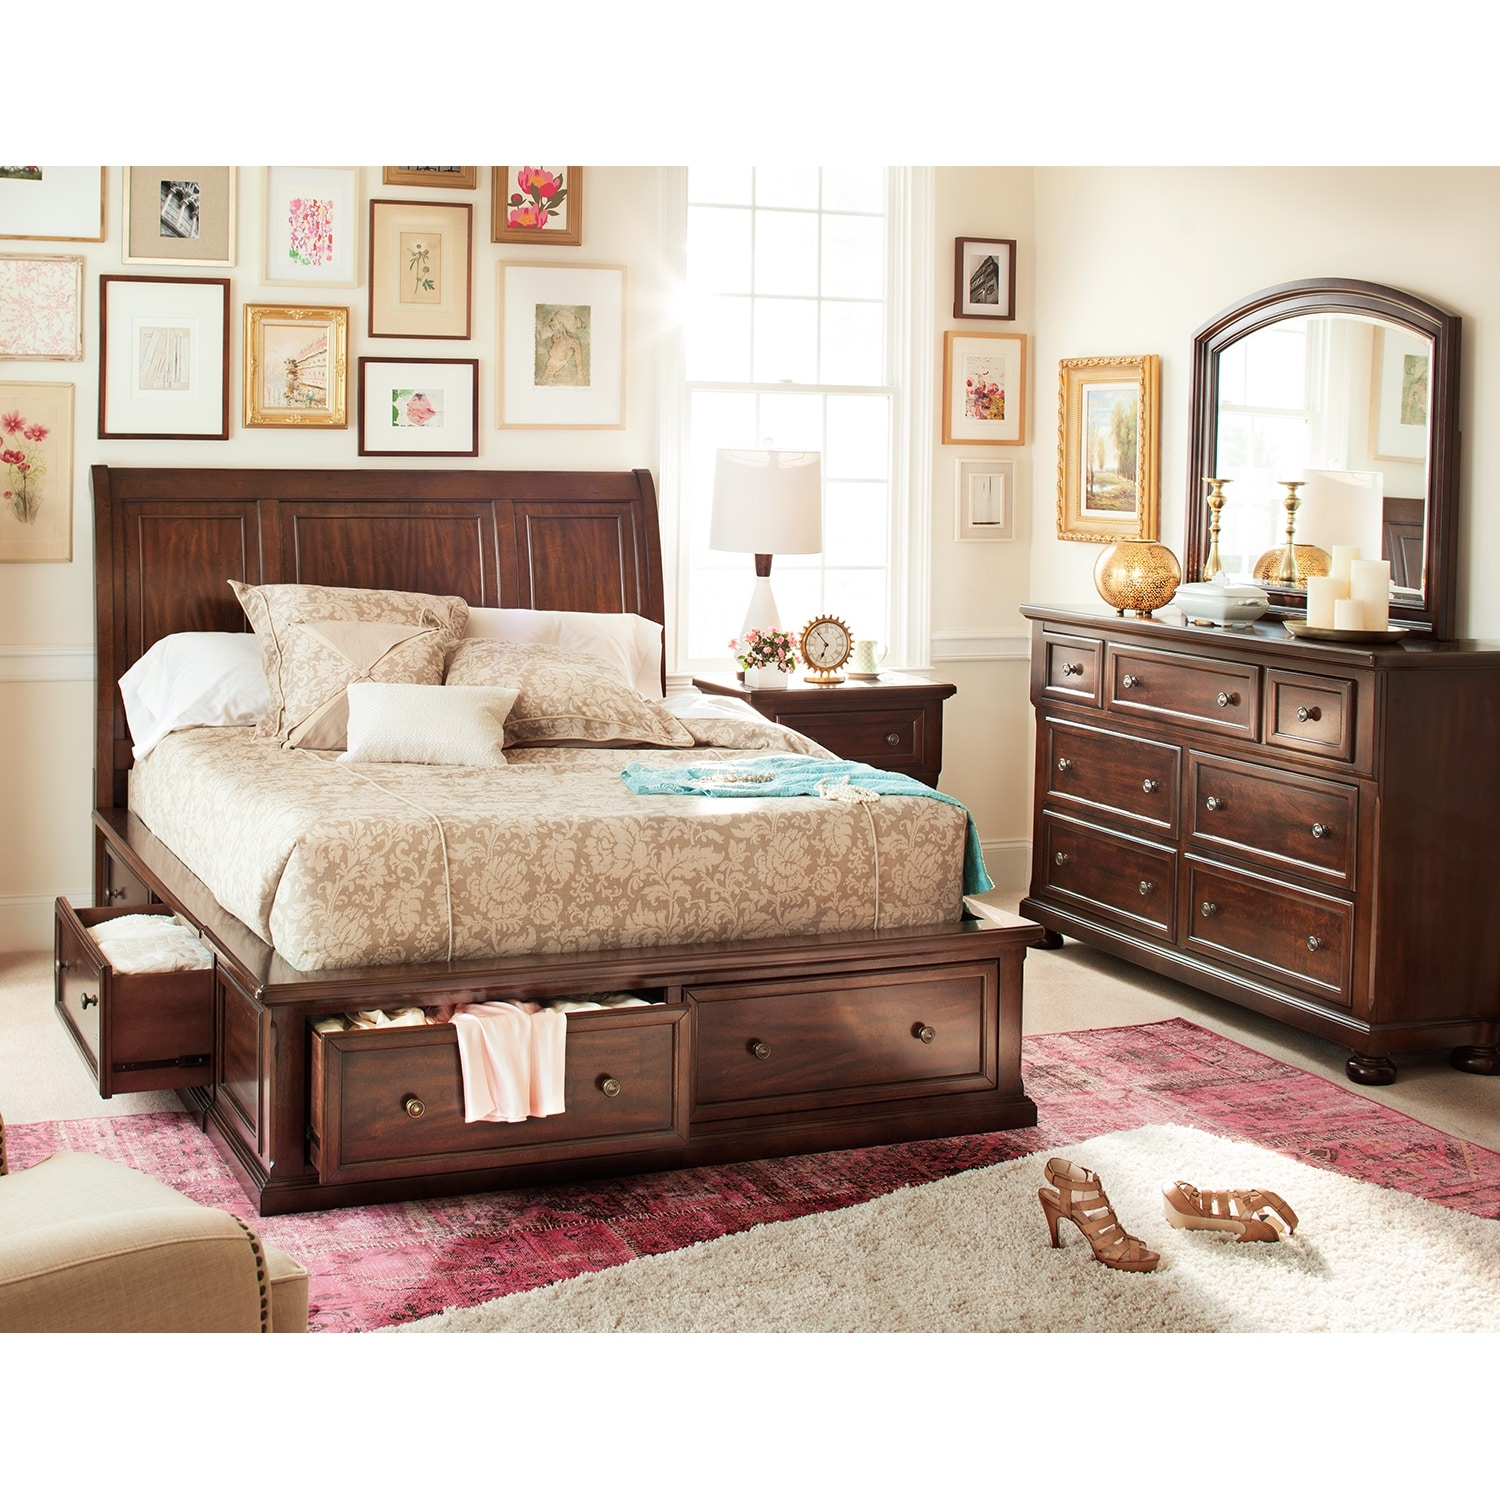 Bedroom Furniture - Hanover 5 Pc. Queen Storage Bedroom